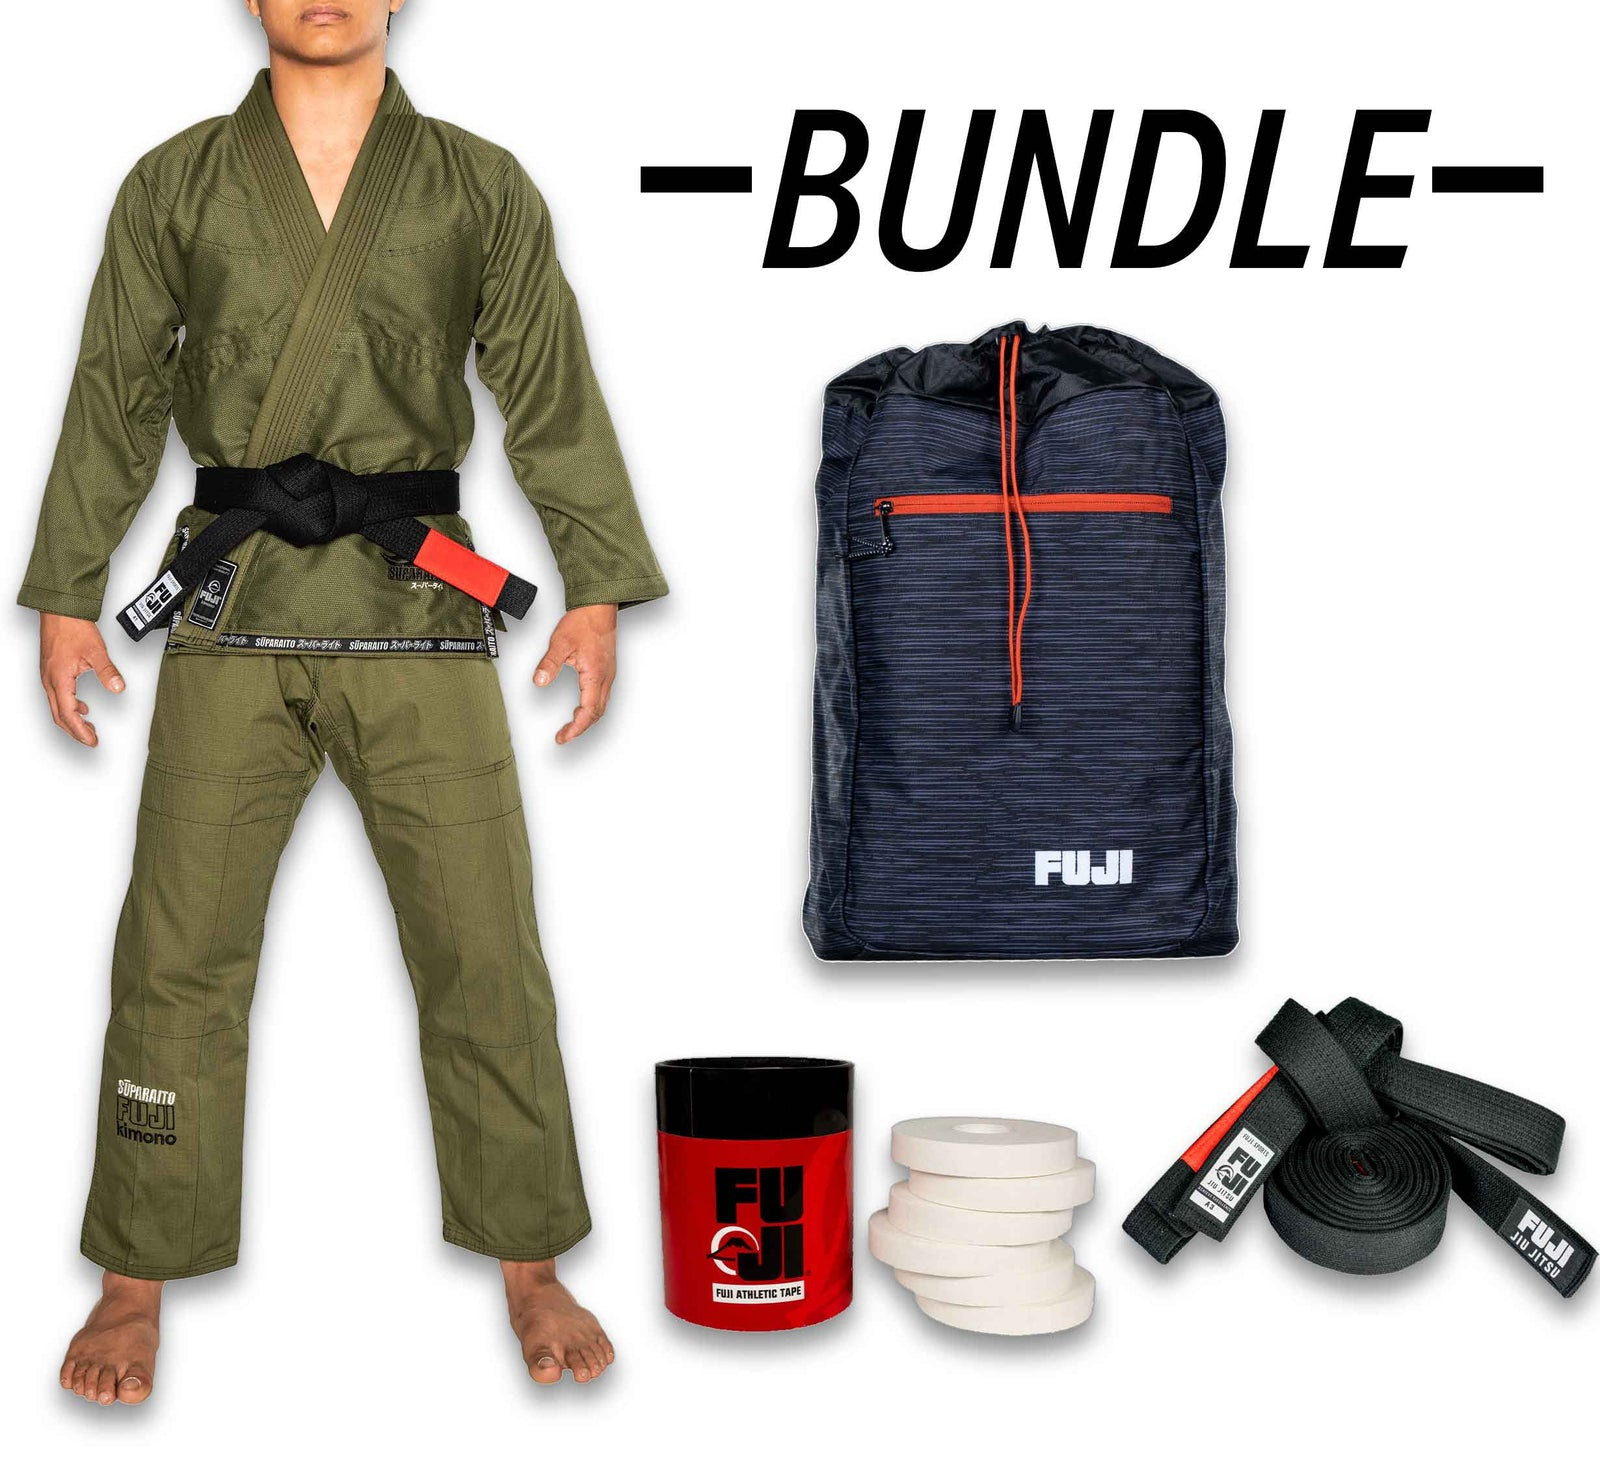 Suparaito BJJ Gi Bundle (4 items)